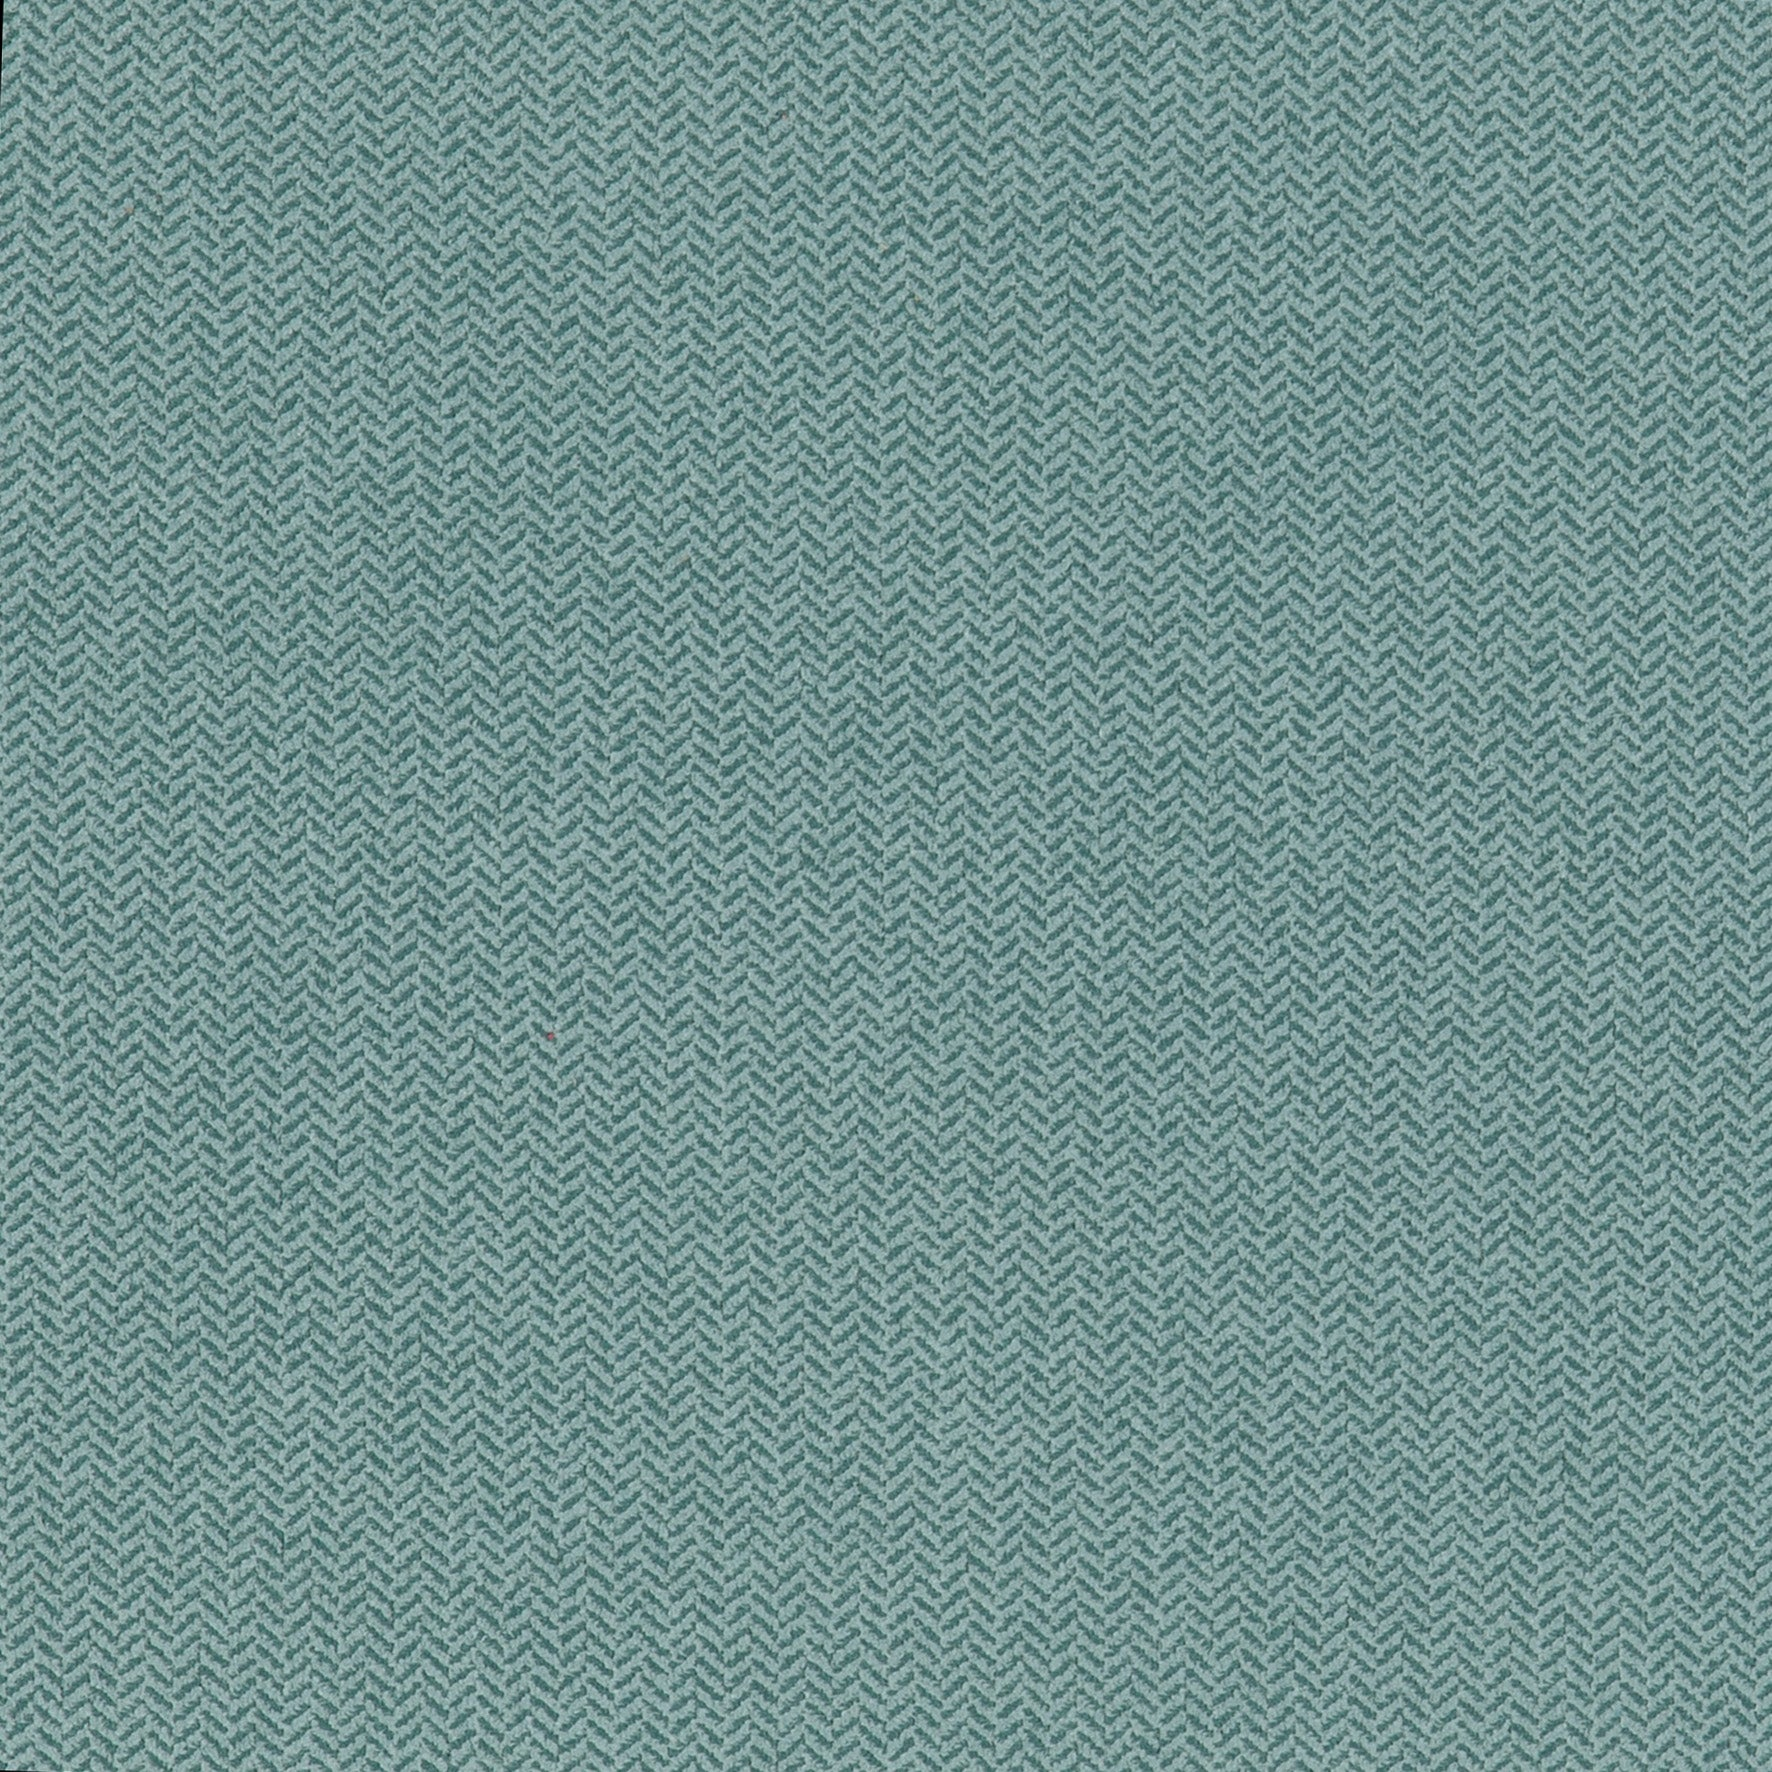 Nobel Seagrass waterproof fabric for dog beds